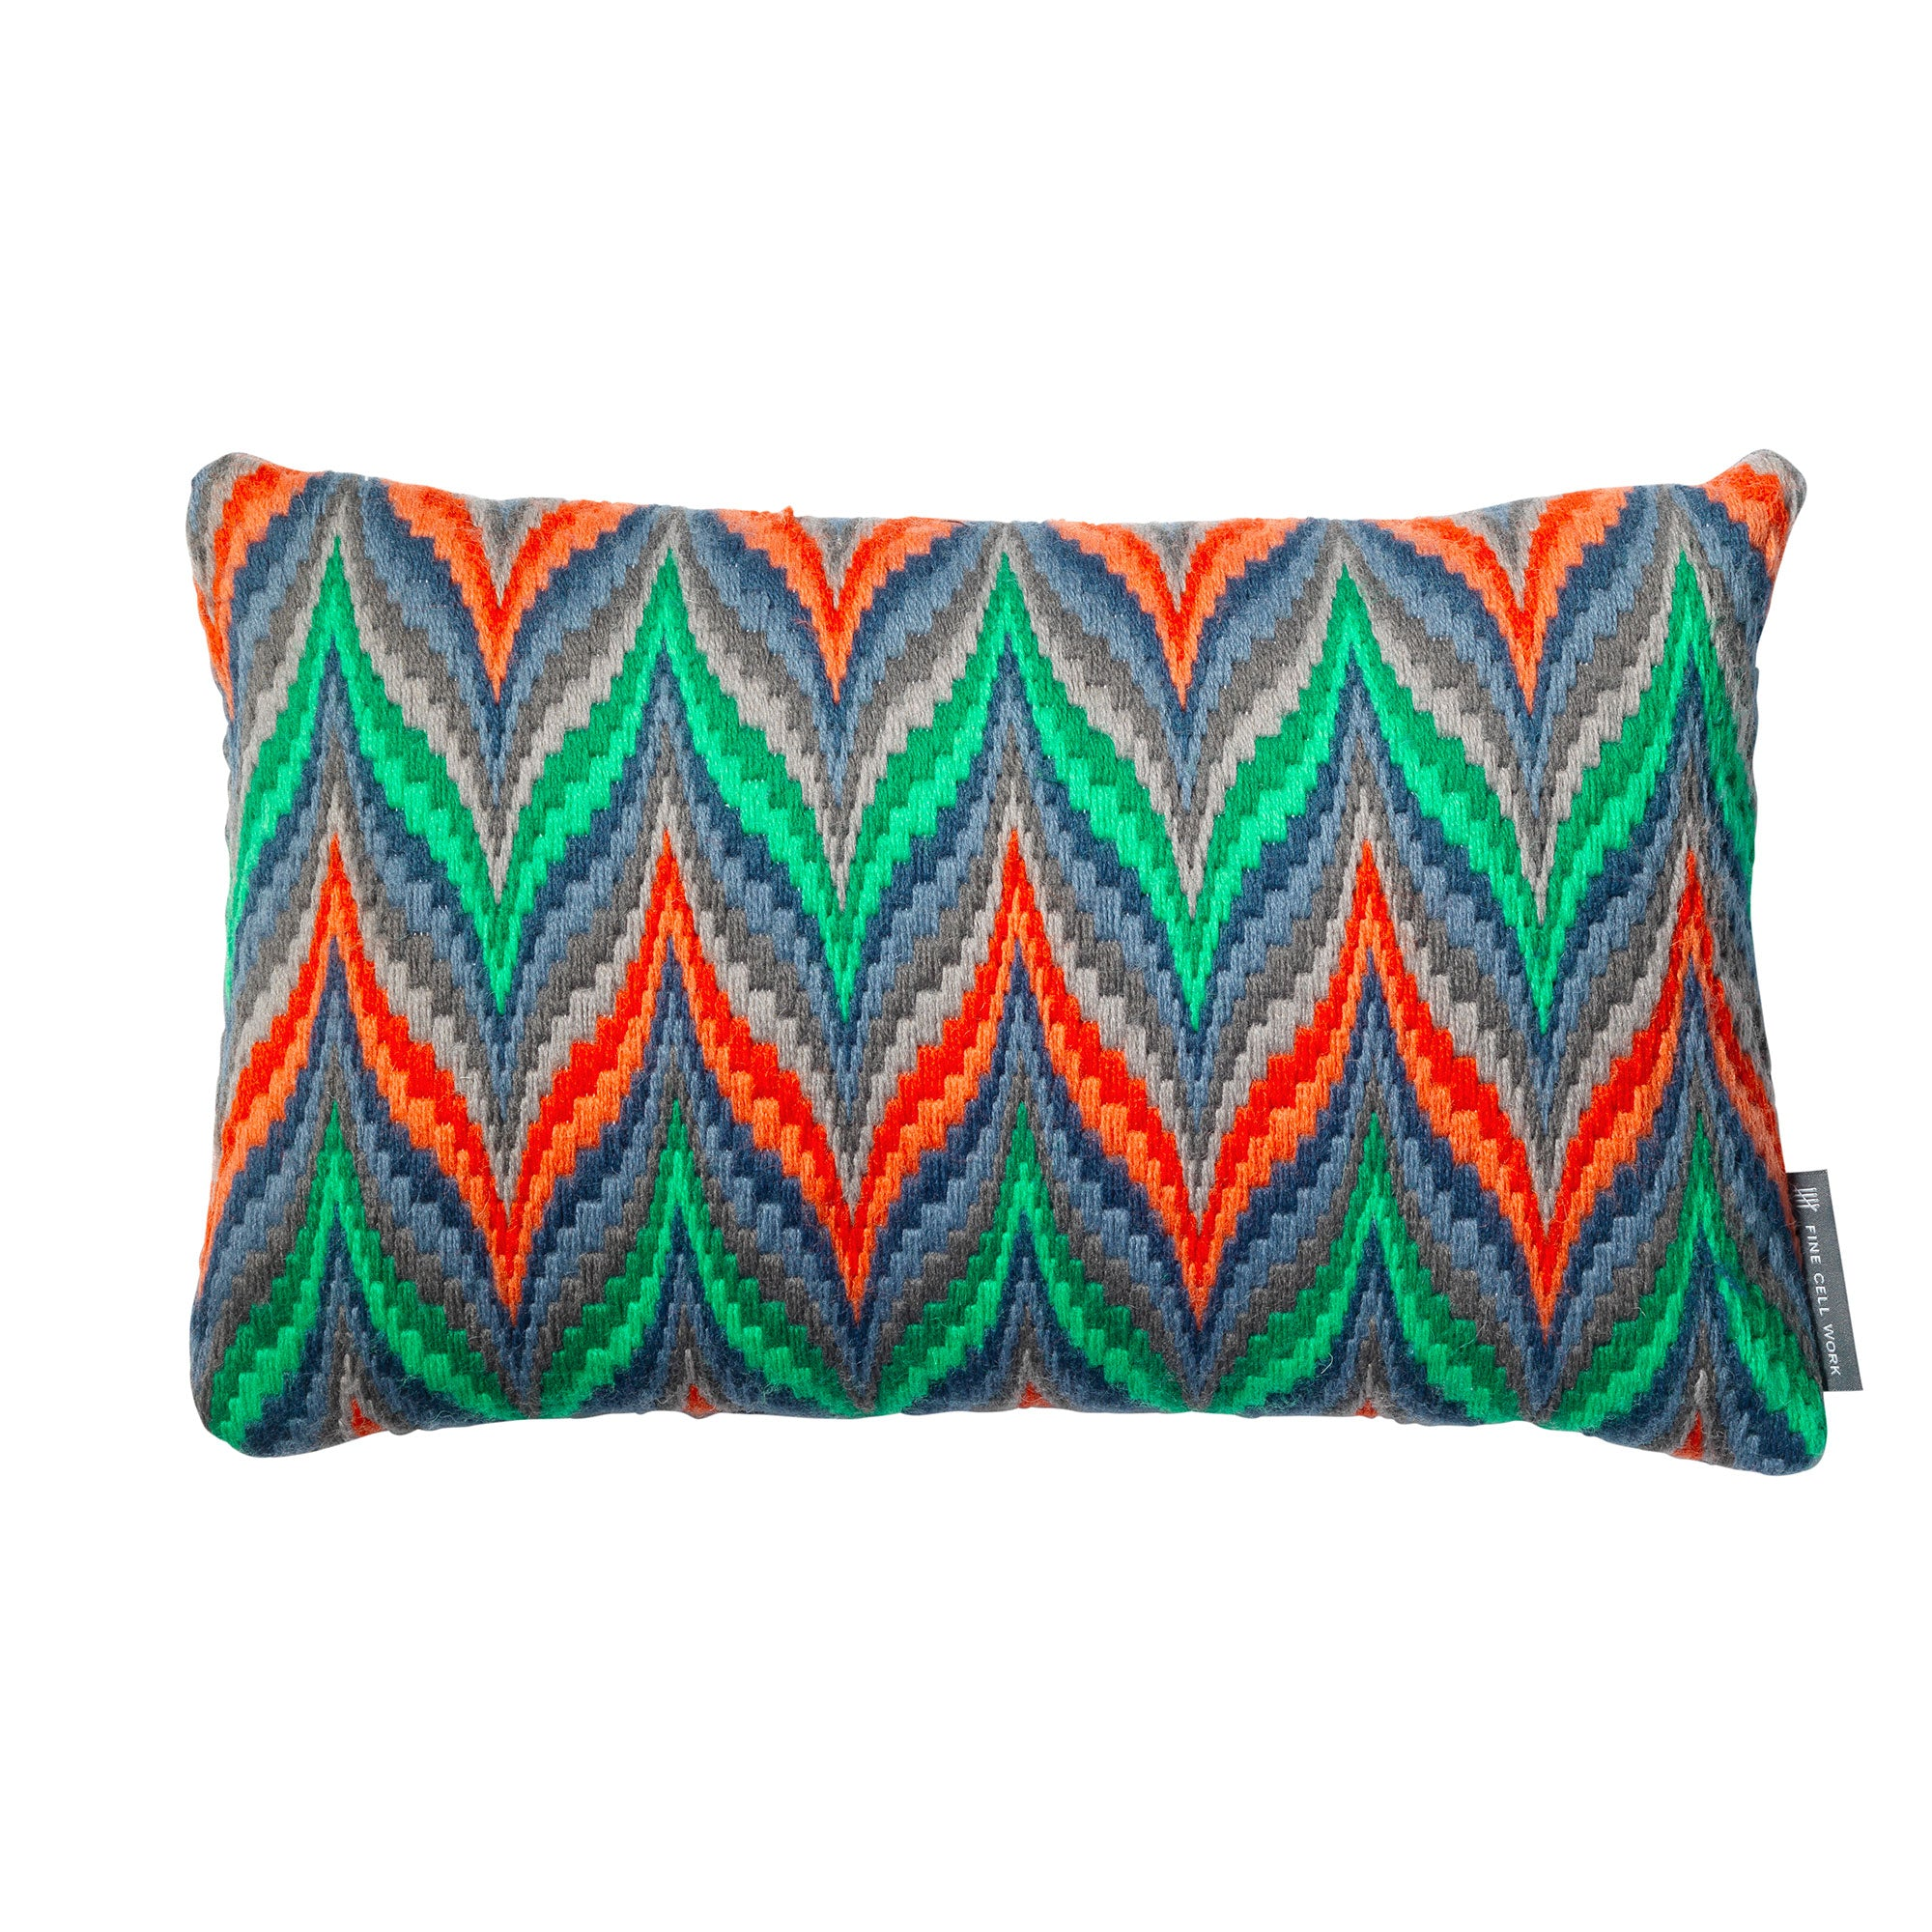 Bargello Flame Needlepoint Cushion Emerald and Orange Cath Kidston for Fine Cell Work featured George Clarke Old House New Home Channel 4